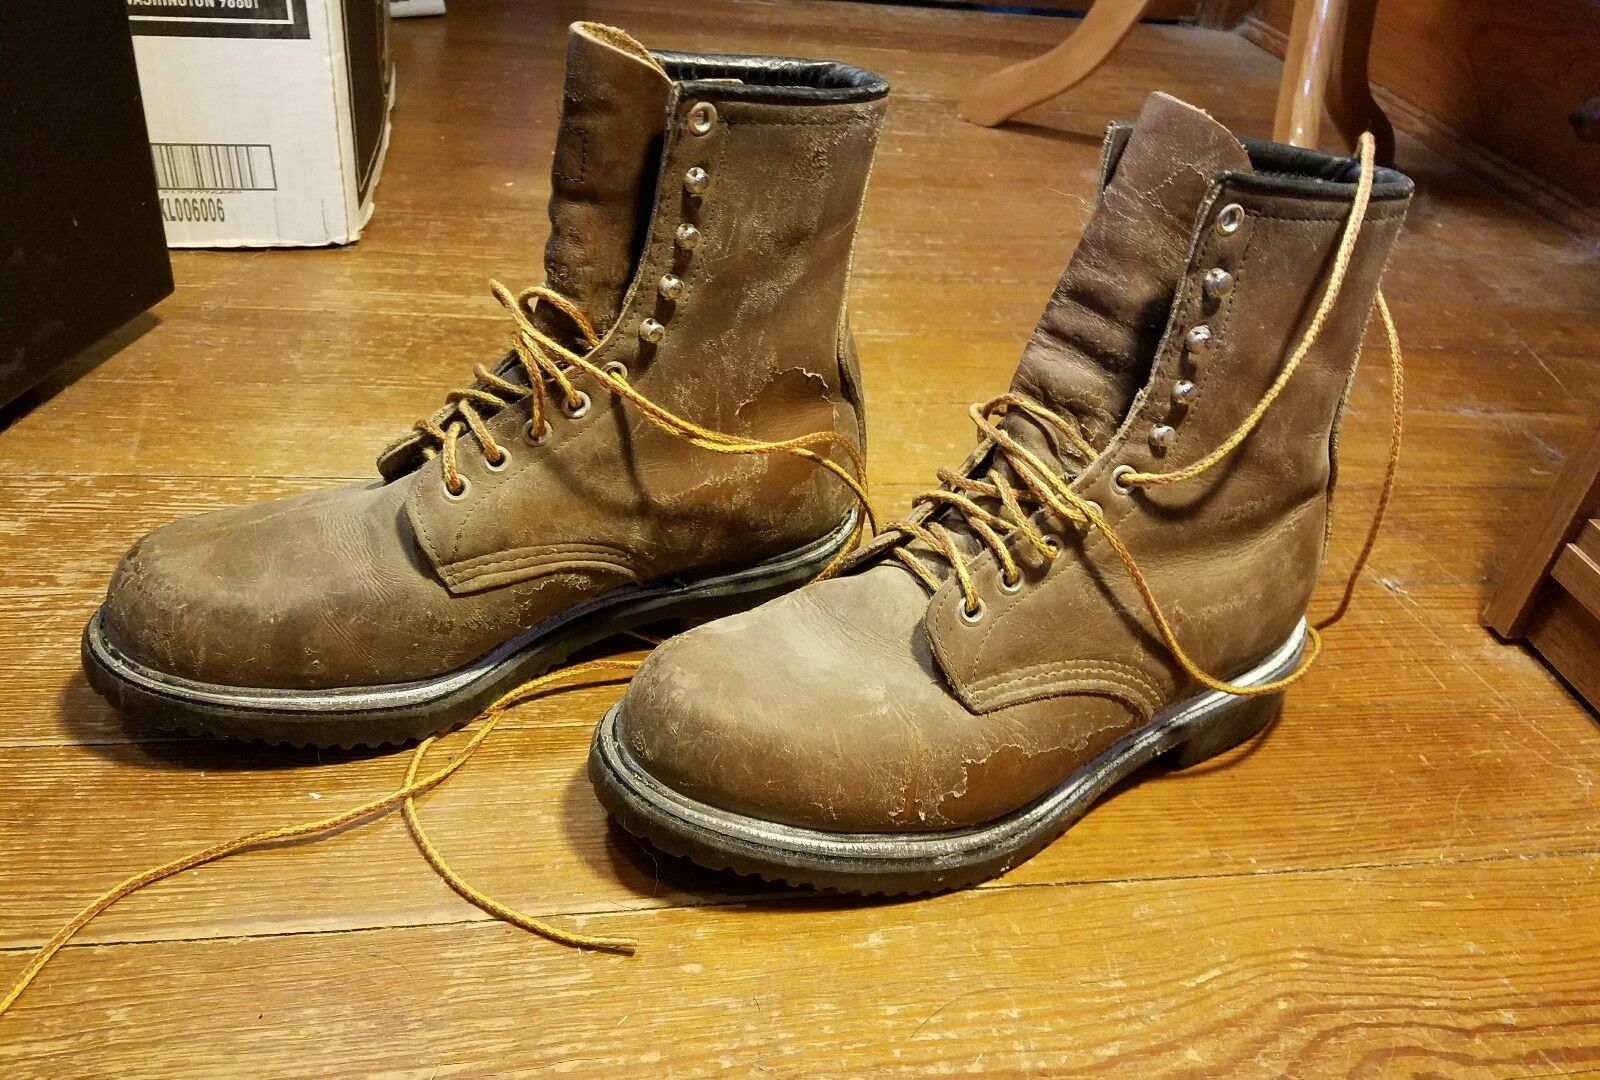 Vintage Men's Red Wing Insulated Leather Work Boots Size 8 D USA Made 05001